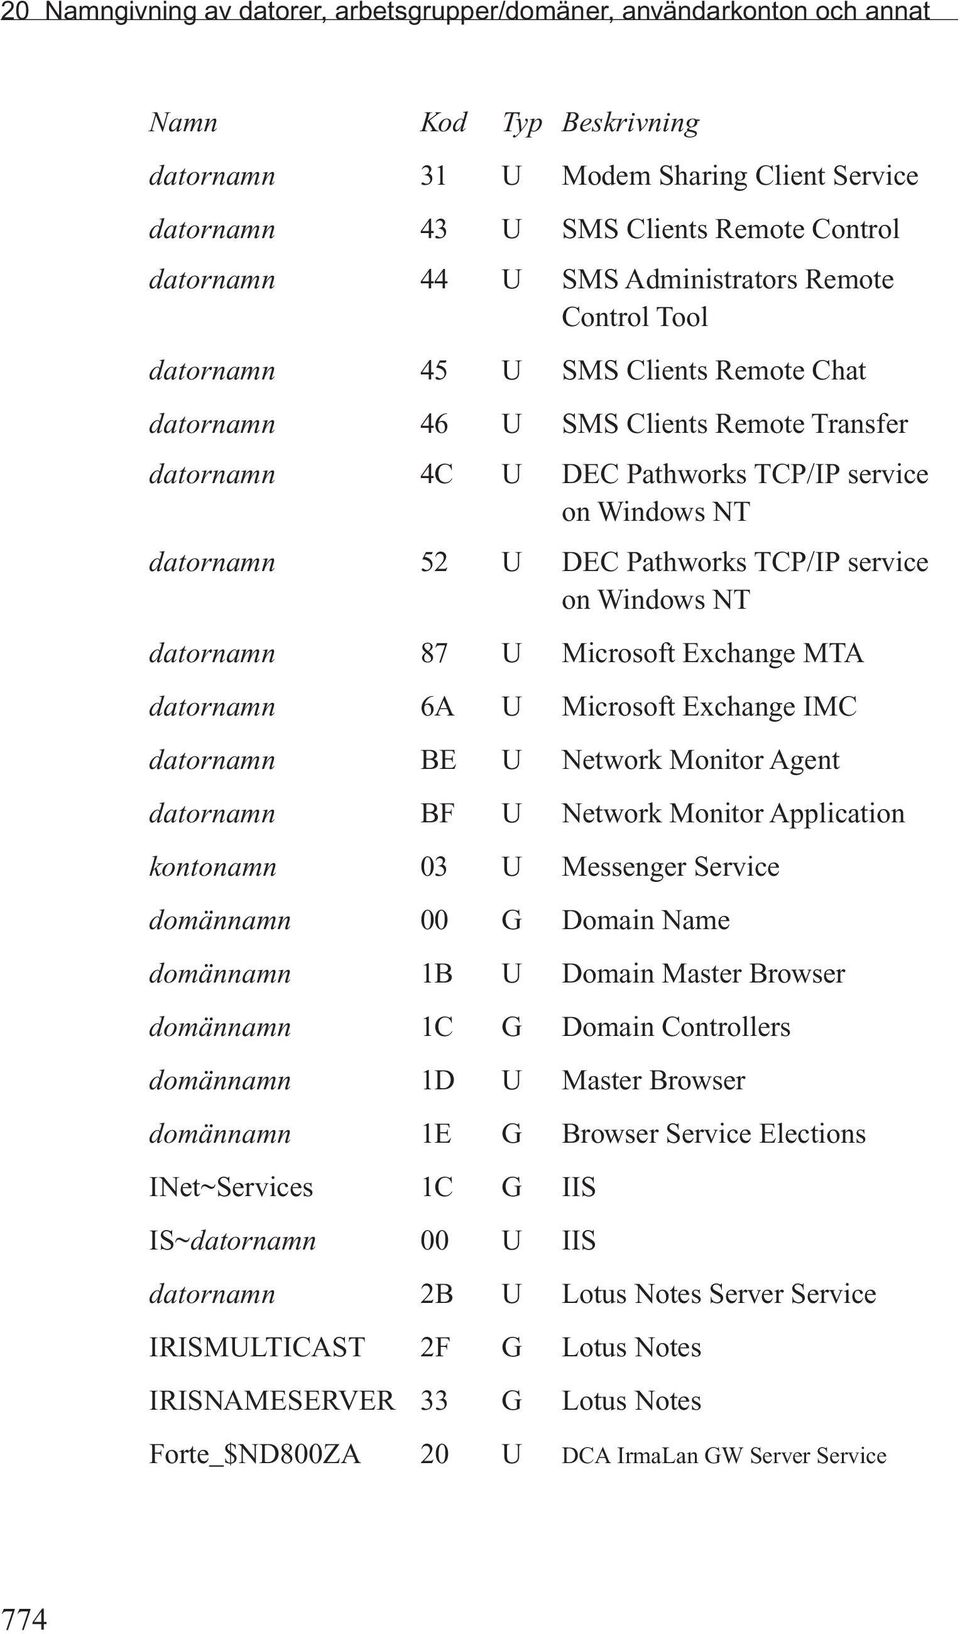 Pathworks TCP/IP service on Windows NT datornamn 87 U Microsoft Exchange MTA datornamn 6A U Microsoft Exchange IMC datornamn BE U Network Monitor Agent datornamn BF U Network Monitor Application